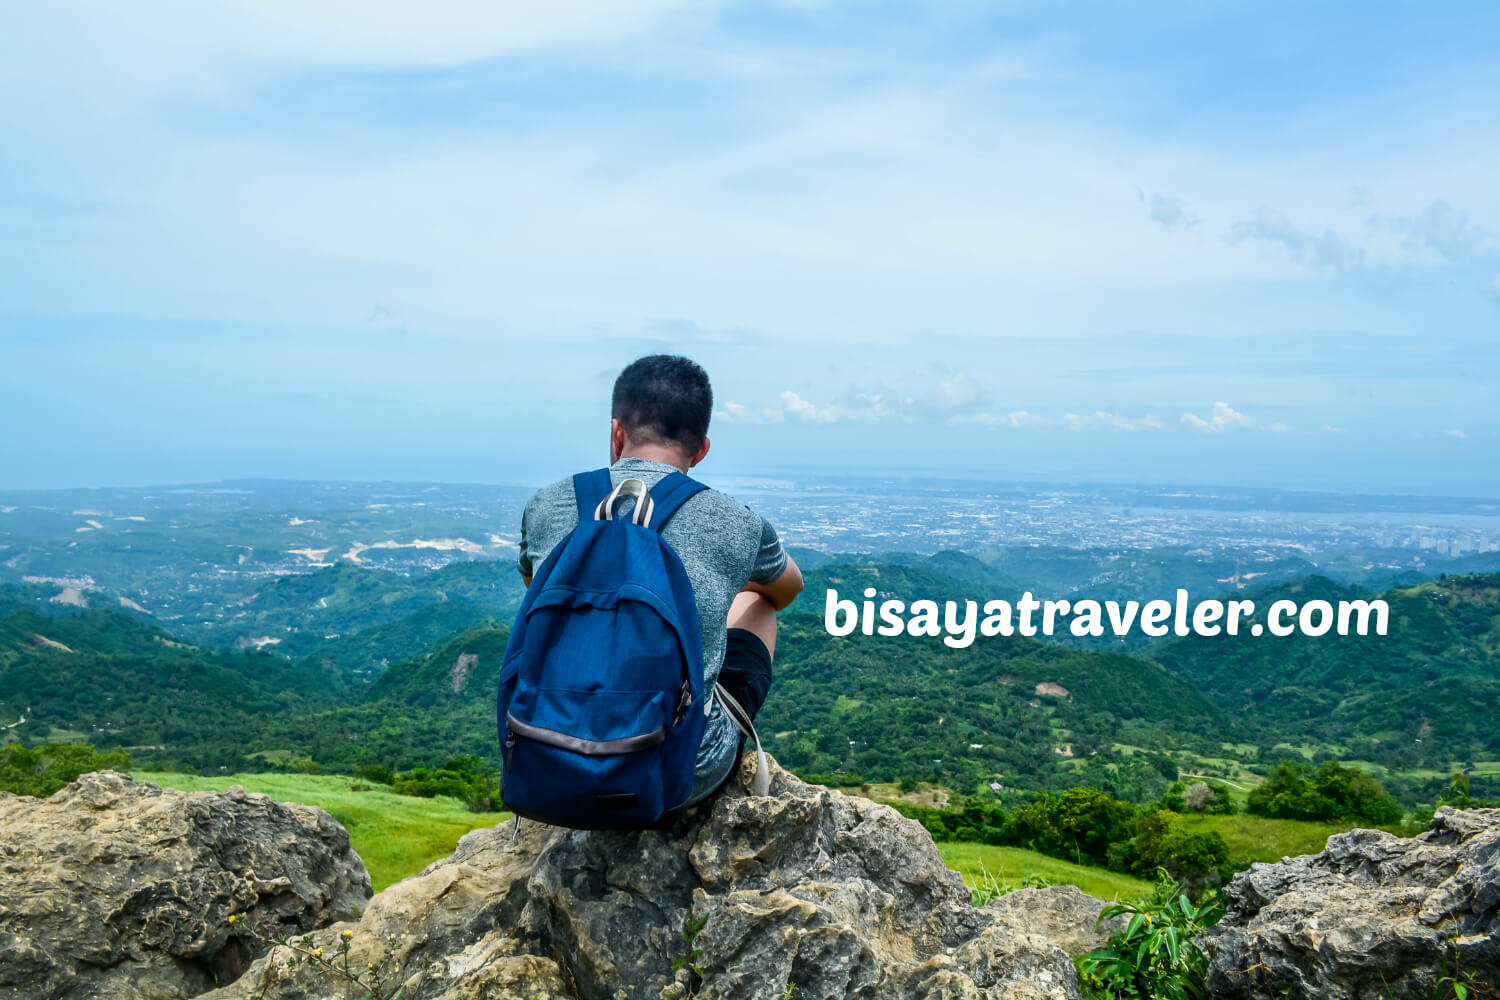 12 Reasons To Travel While You're Still Young